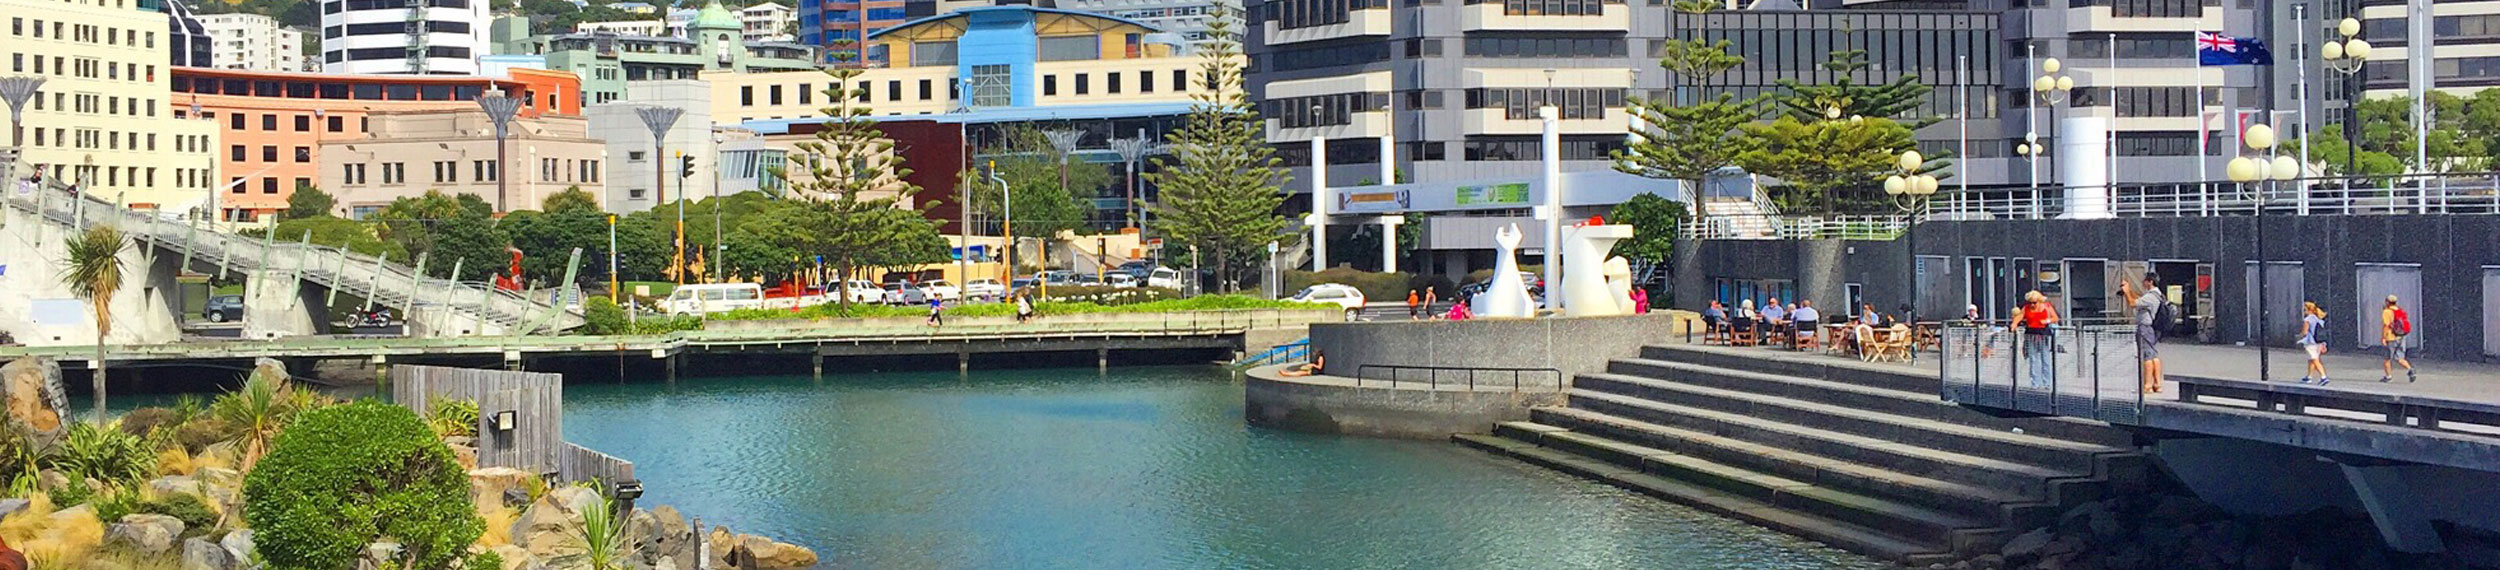 View of a waterfront area with modern buildings in the background in Wellington, New Zealand